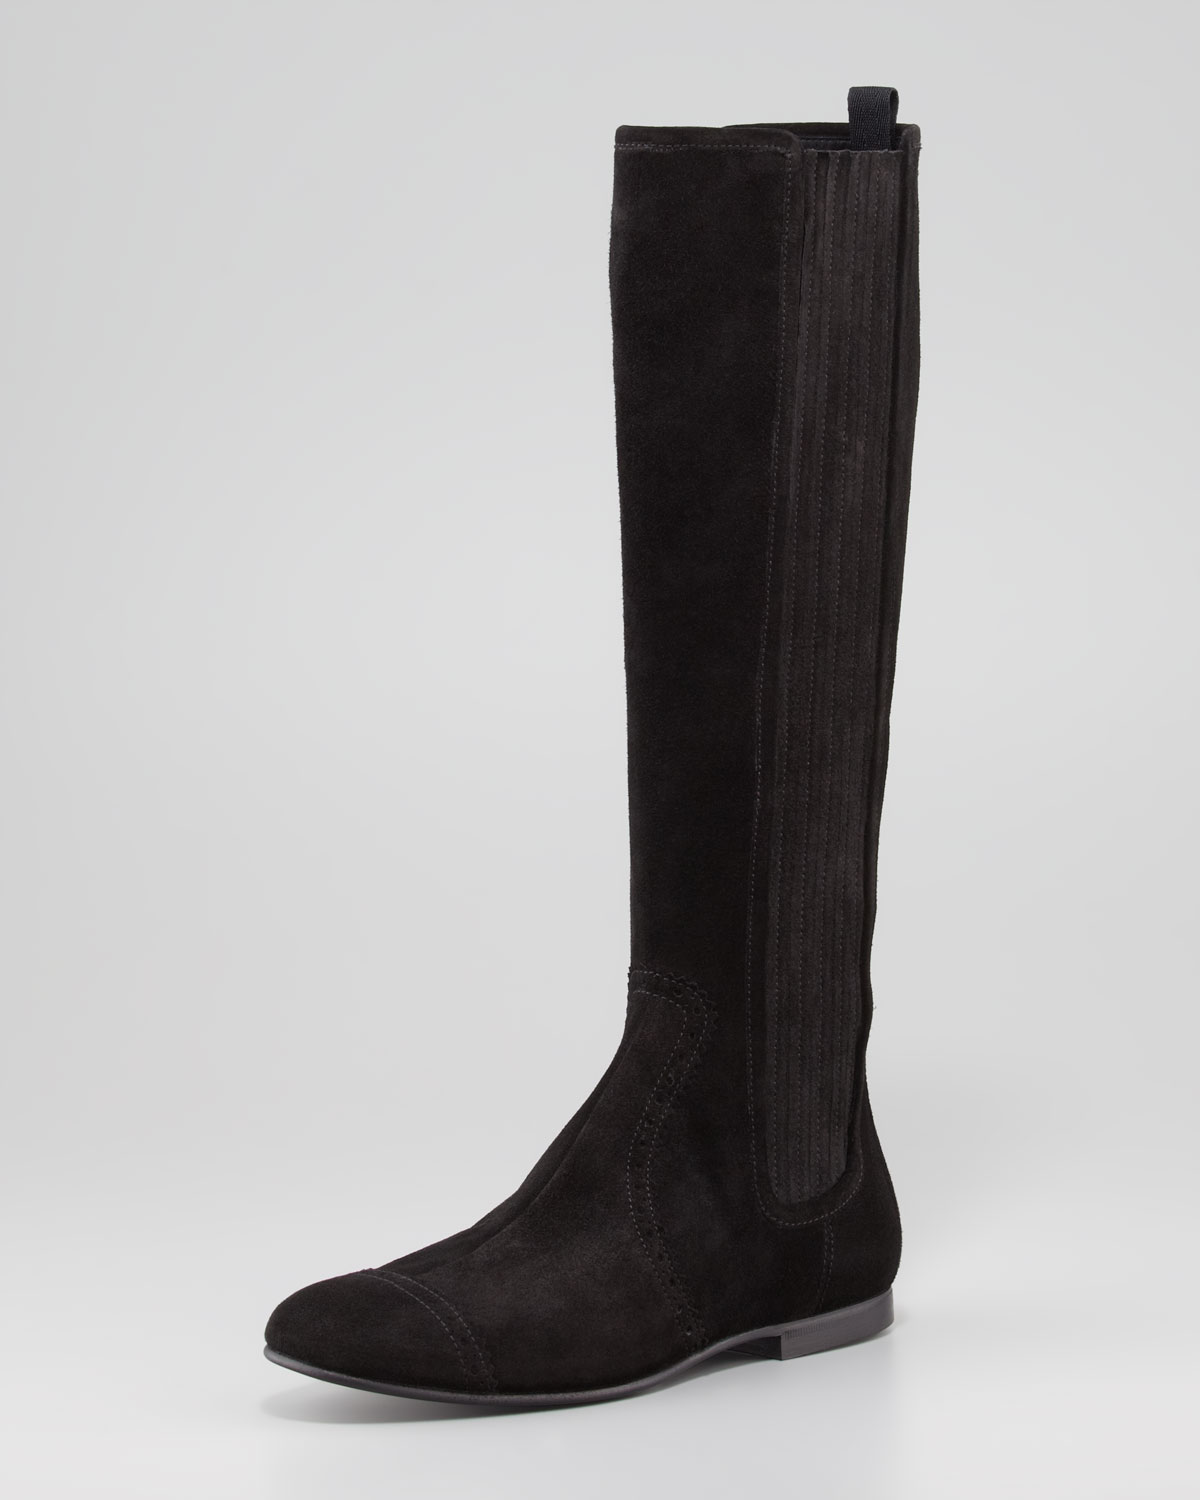 black suede knee boots flat \u003e Up to 70